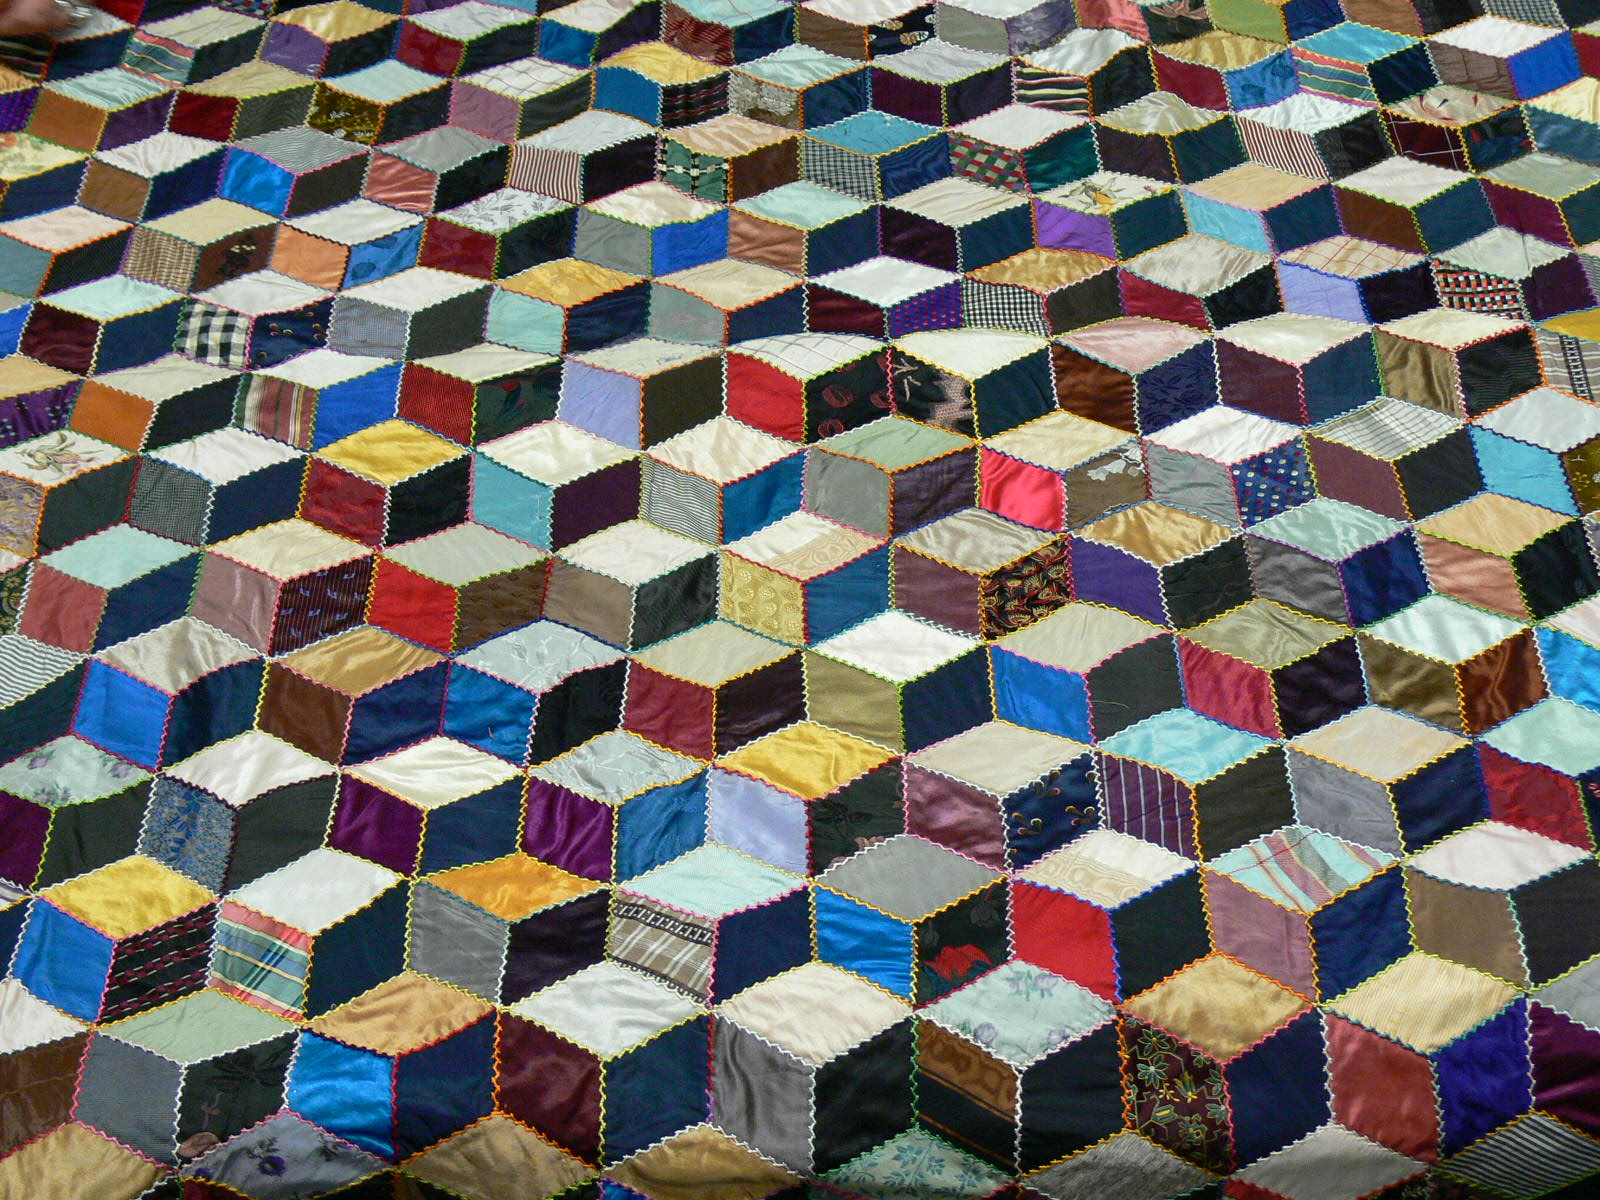 Tumbling blocks quilt top by Josephine Fitch Bailhache